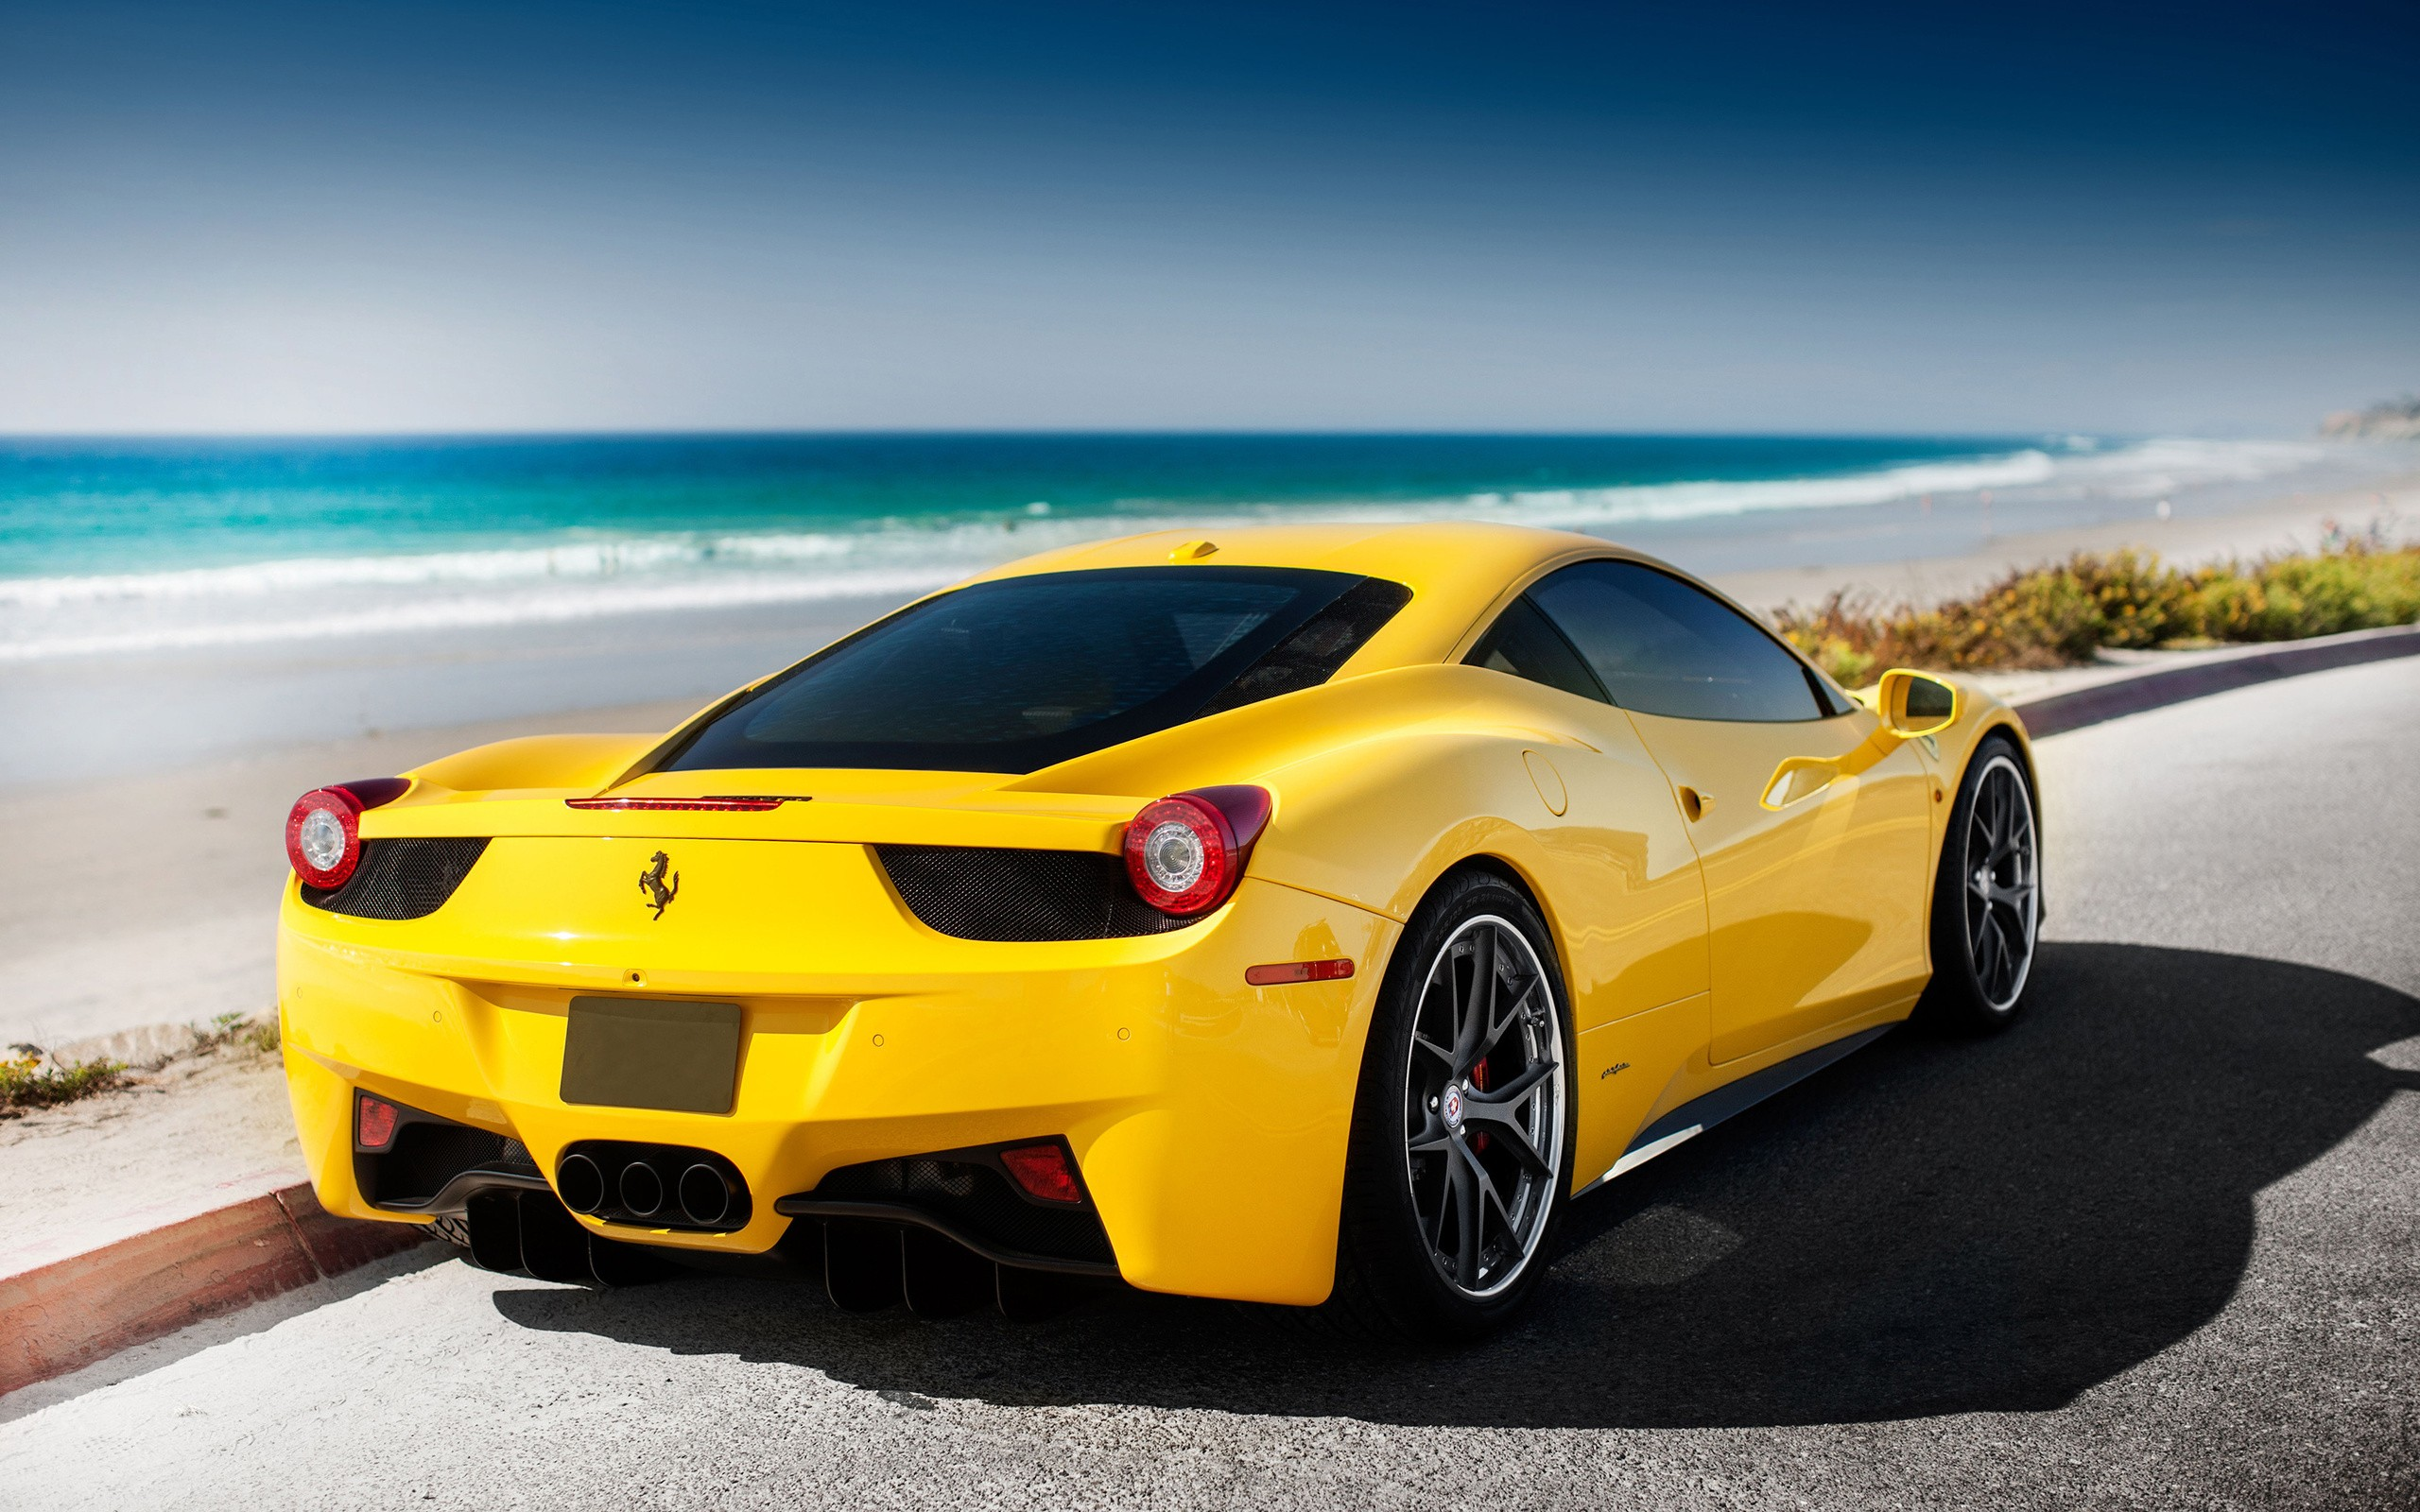 Awesome Yellow Ferrari Wallpaper